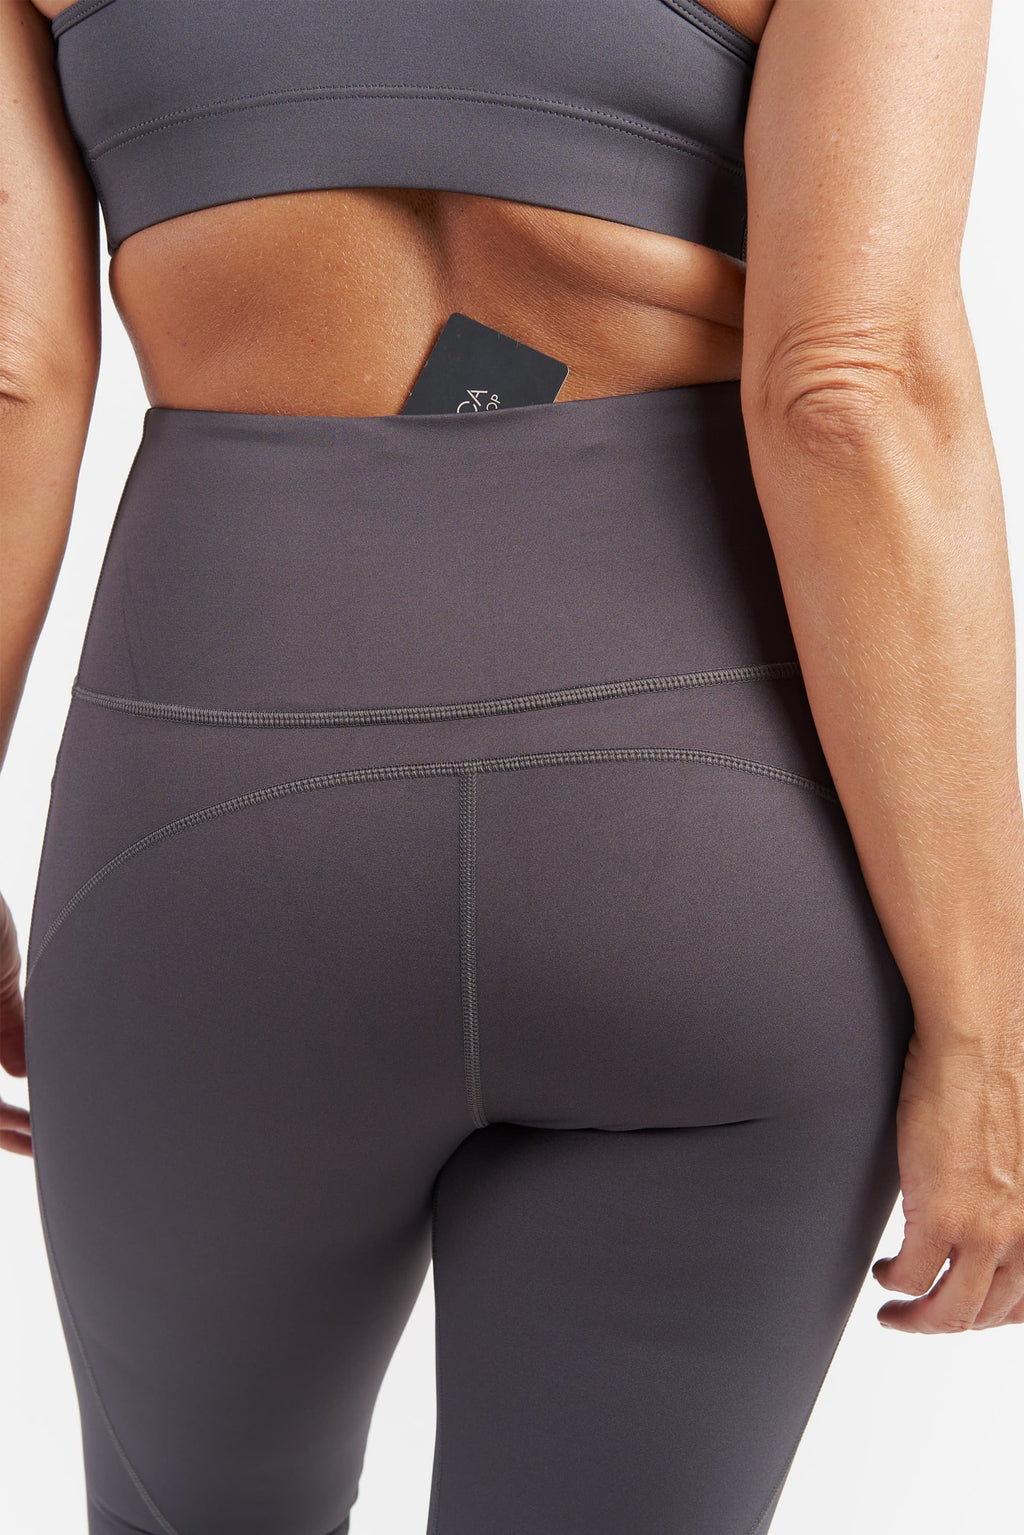 croppedlength-gym-tights-grey-large-back